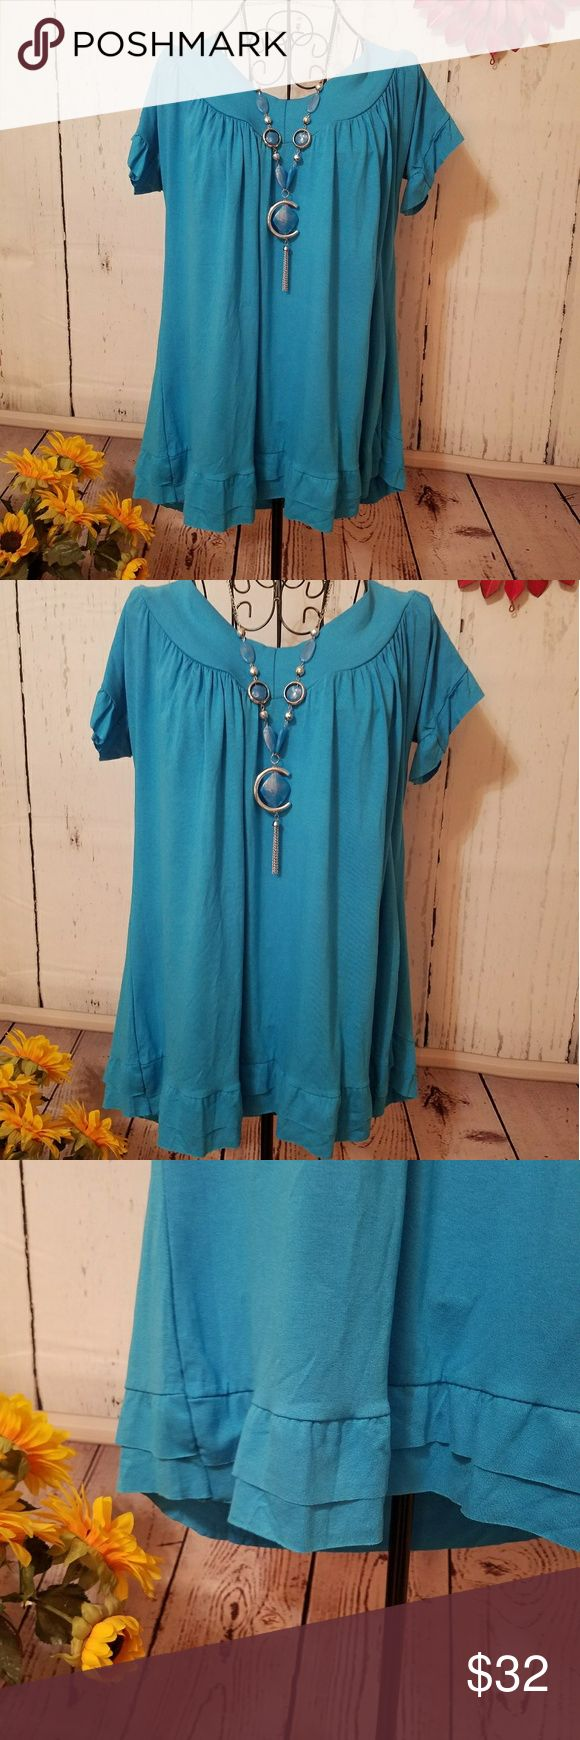 "Brand New GORGEOUS Sea Blue Gypsy tunic top XXL SUPER cute top with layer ruffle at bottom raw and so cute! and slight ruffle to short sleeves.  Gorgeous color deep sea blue! 98% viscose & 2% elastane. JERSEY SOFT! Thin and cool with stretchy to it. Adorable ""scoop drop neck""design which is a slight rounded V neck. Beautiful and flowy!Necklace is included if wanted.  Underarm to underarm is 20 in, lenght top of shoulder to bottom hem 28.5 in. THESE DO NOT HAVE SIZE TAGS. PLZ Check…"